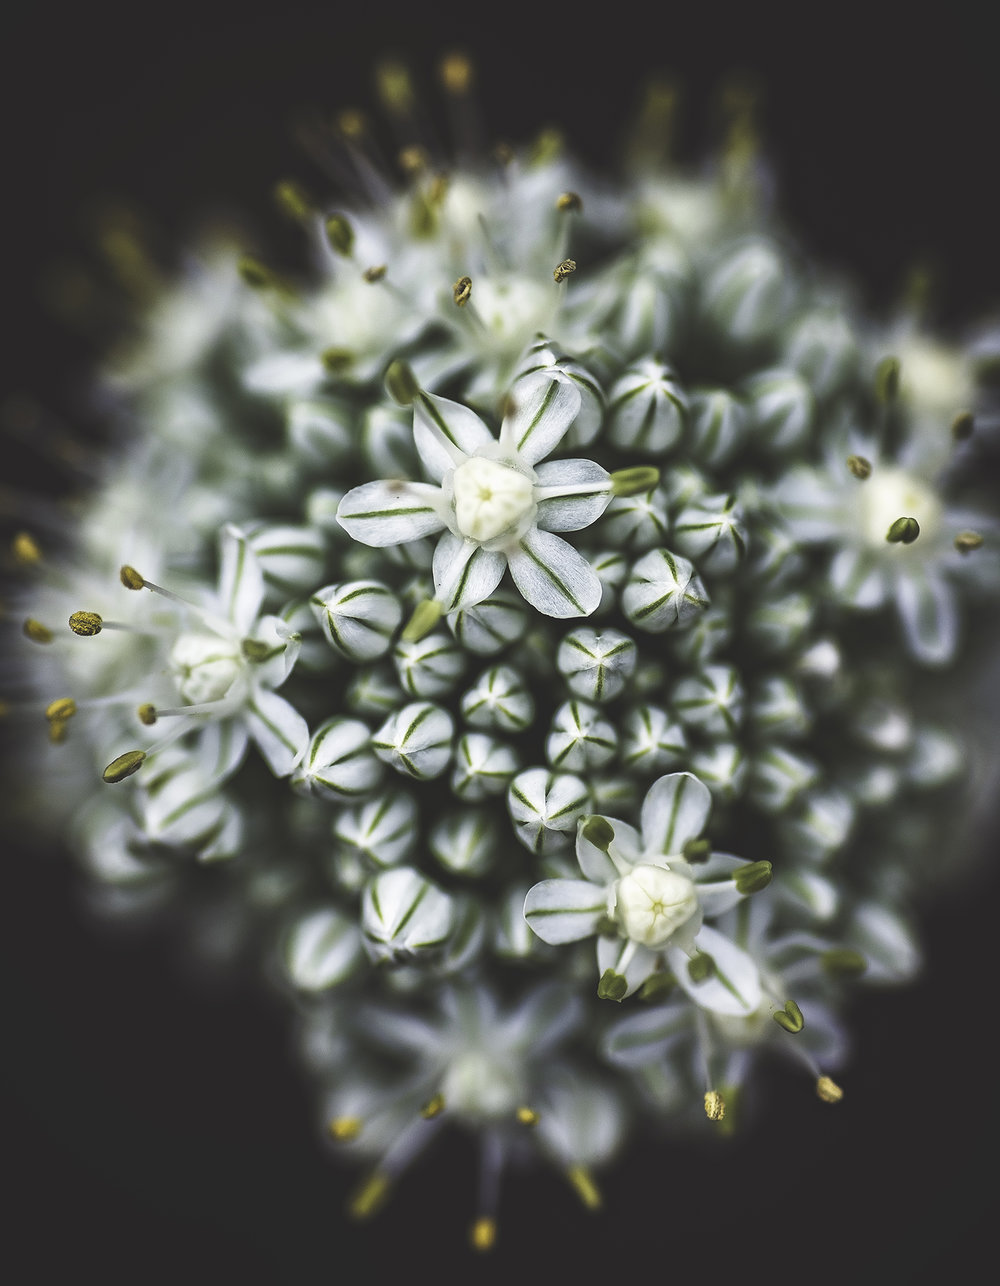 My onion flower image - this was my very first feature!